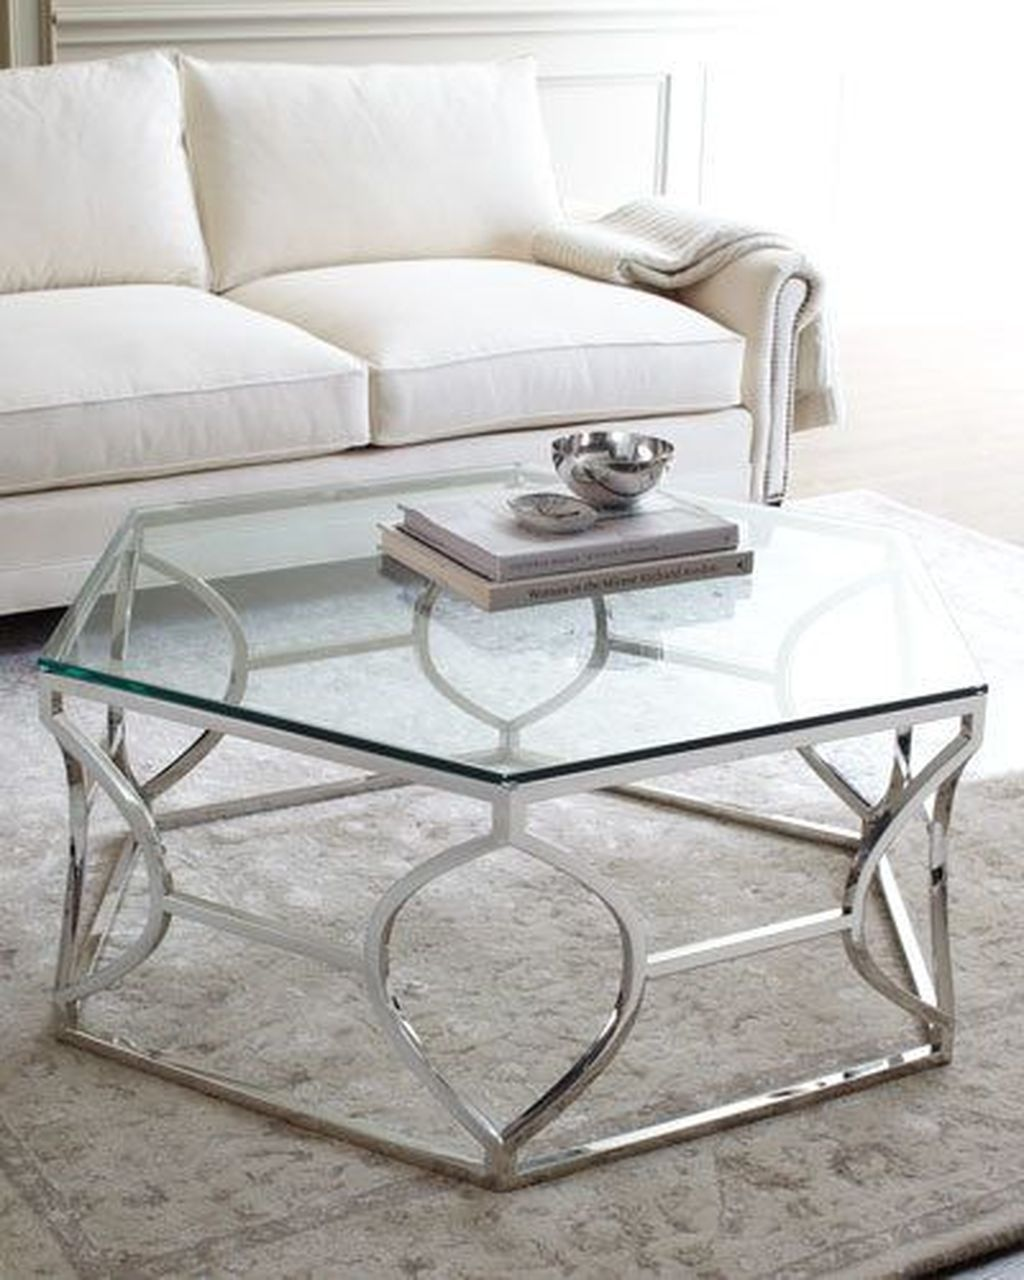 40 Amazing Modern Glass Coffee Table Design Ideas Hoomdesign Coffee Table Coffee Table Design Glass Table Living Room [ 1280 x 1024 Pixel ]